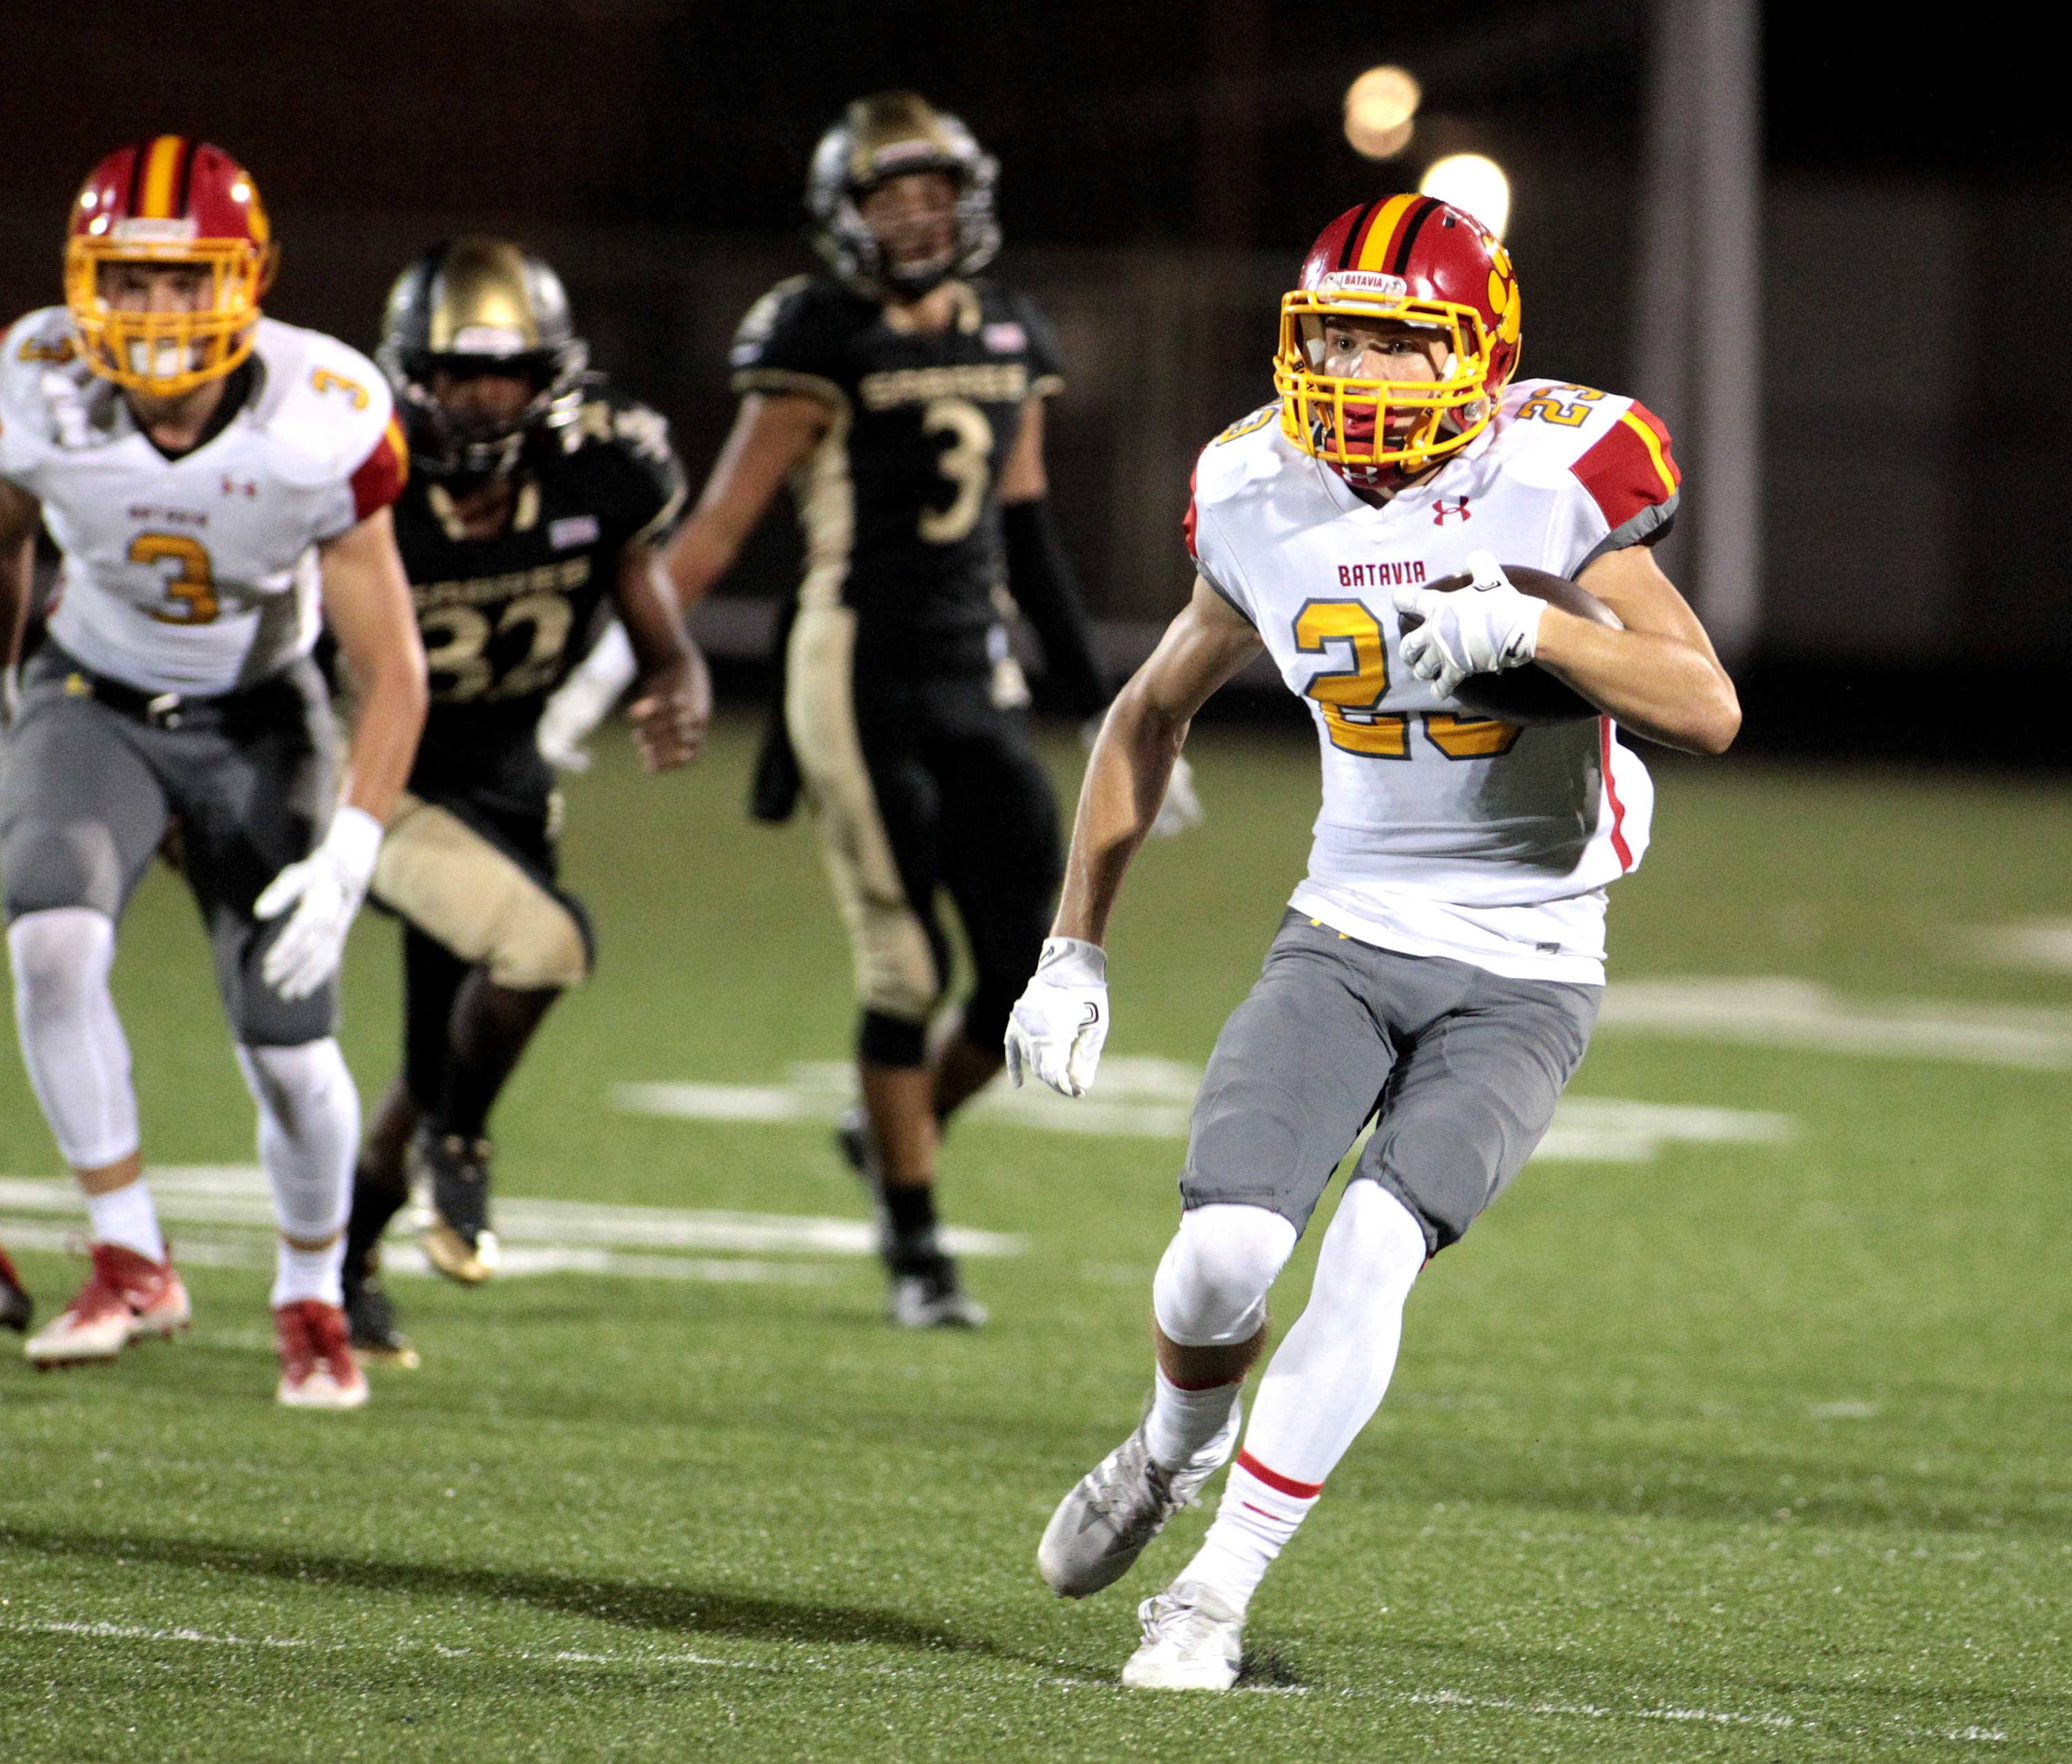 Batavia's Thomas Stuttle (23) runs the ball during a game at Streamwood Sept. 9.